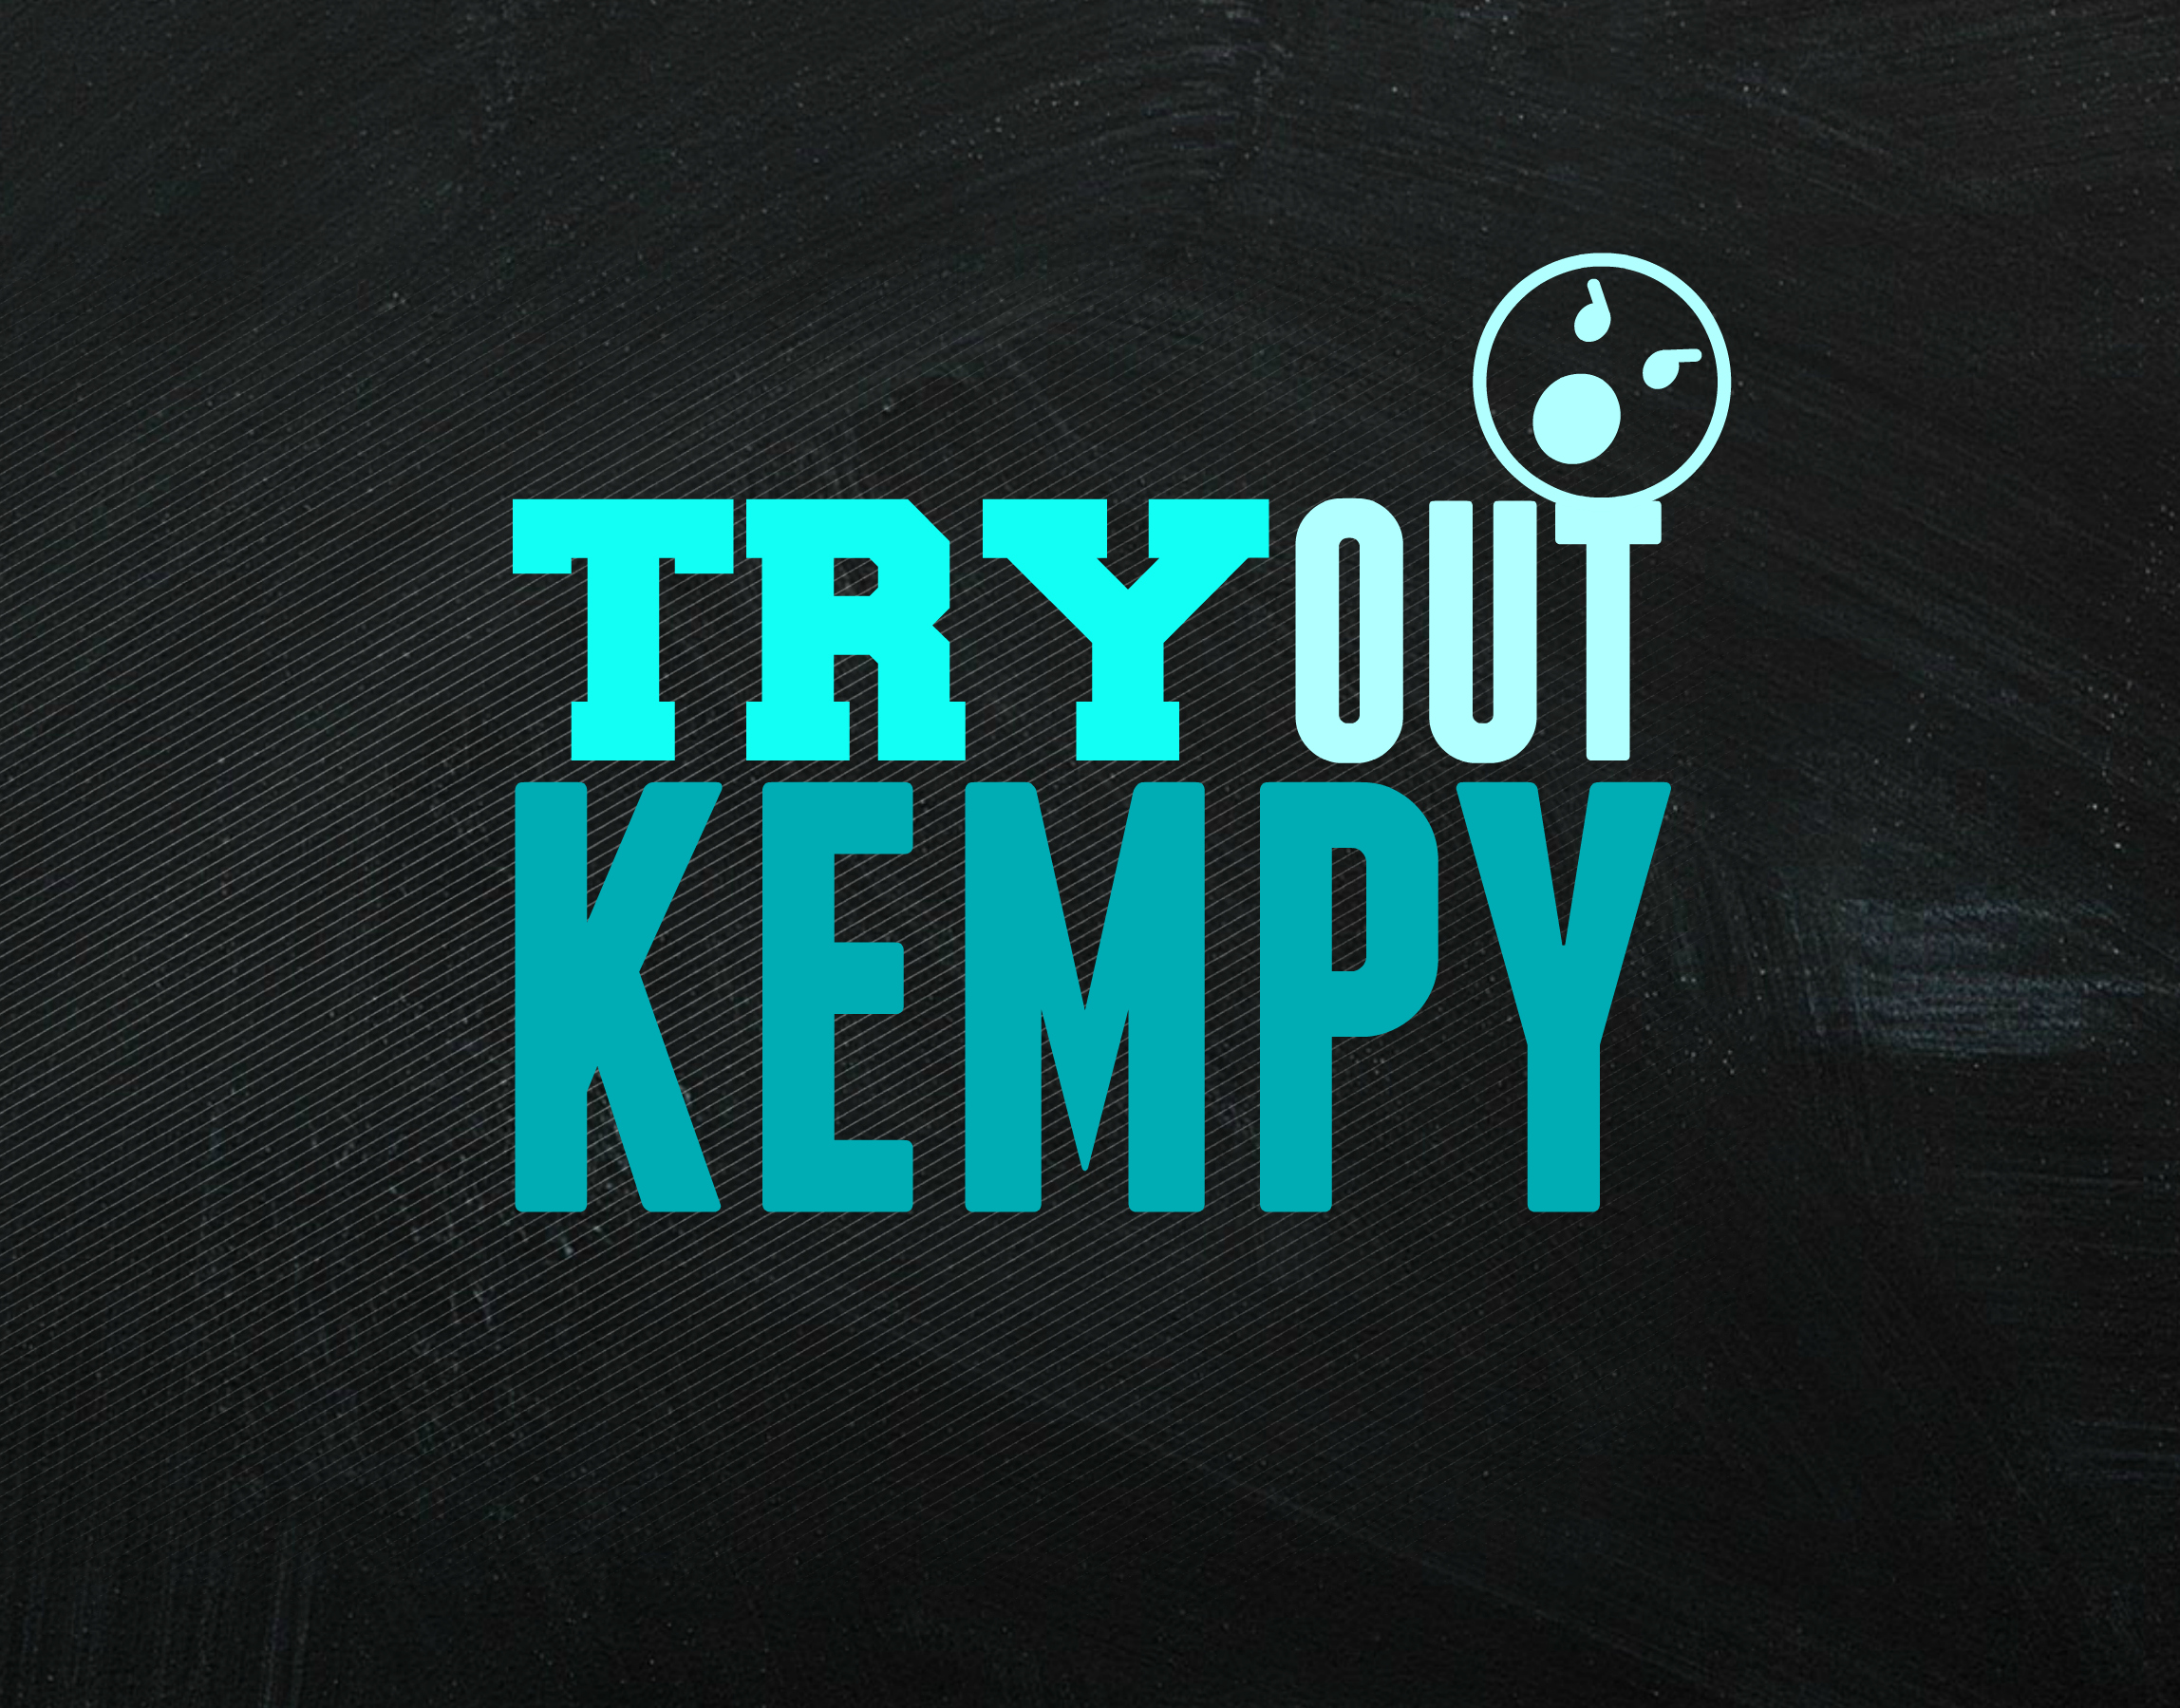 TryOut kempy